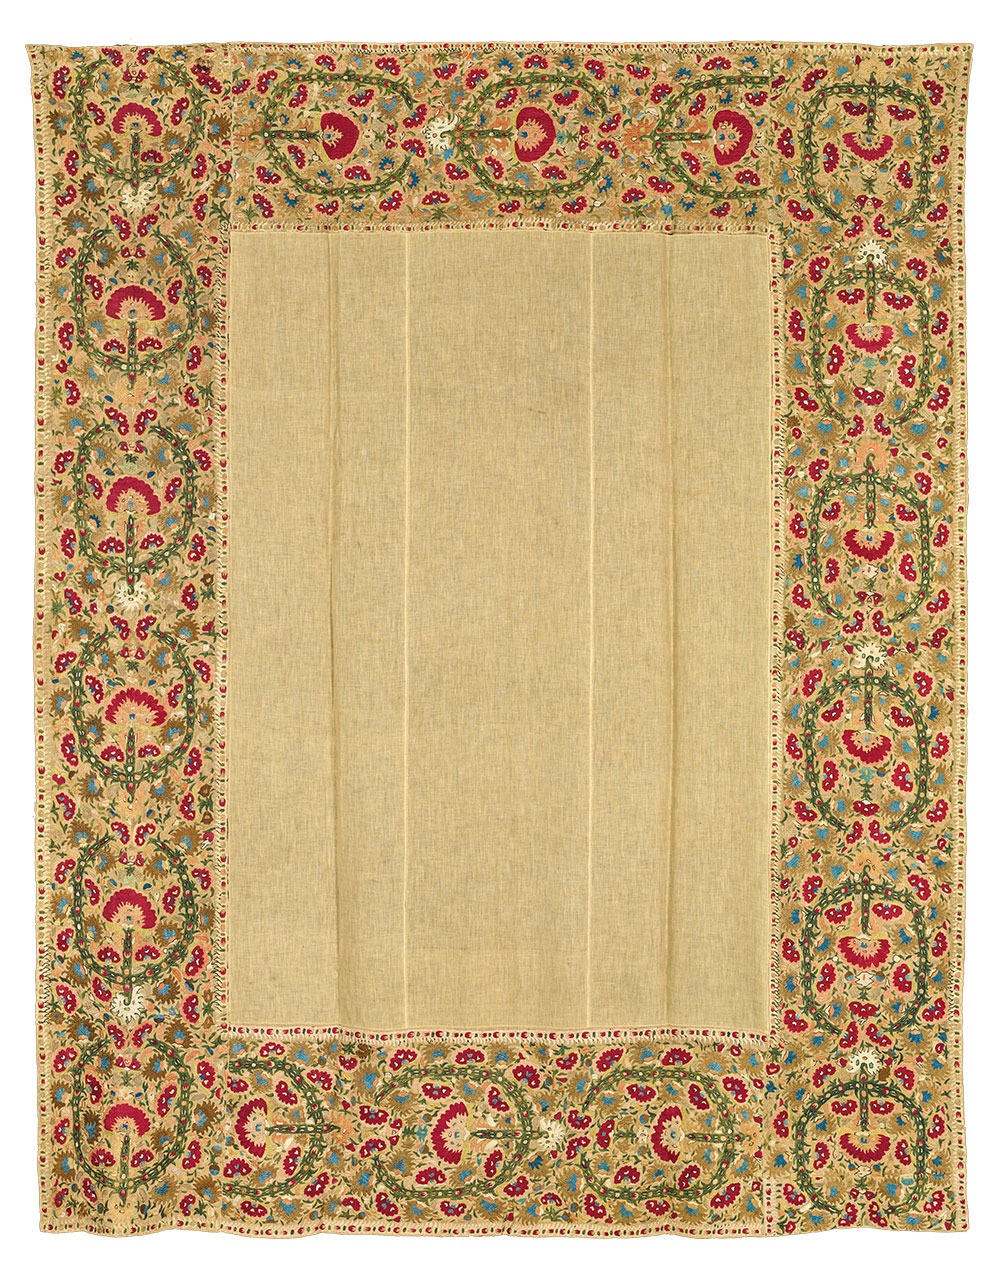 """(6) Bedspread, probably Ioannina, Epirus, 18th century. Silk on linen, 1.82 x 2.18 m (5' 11"""" x 7' 2""""). Ashmolean Museum of Art and Archaeology, University of Oxford, EA1989.211, Presented by John Buxton, 1989"""